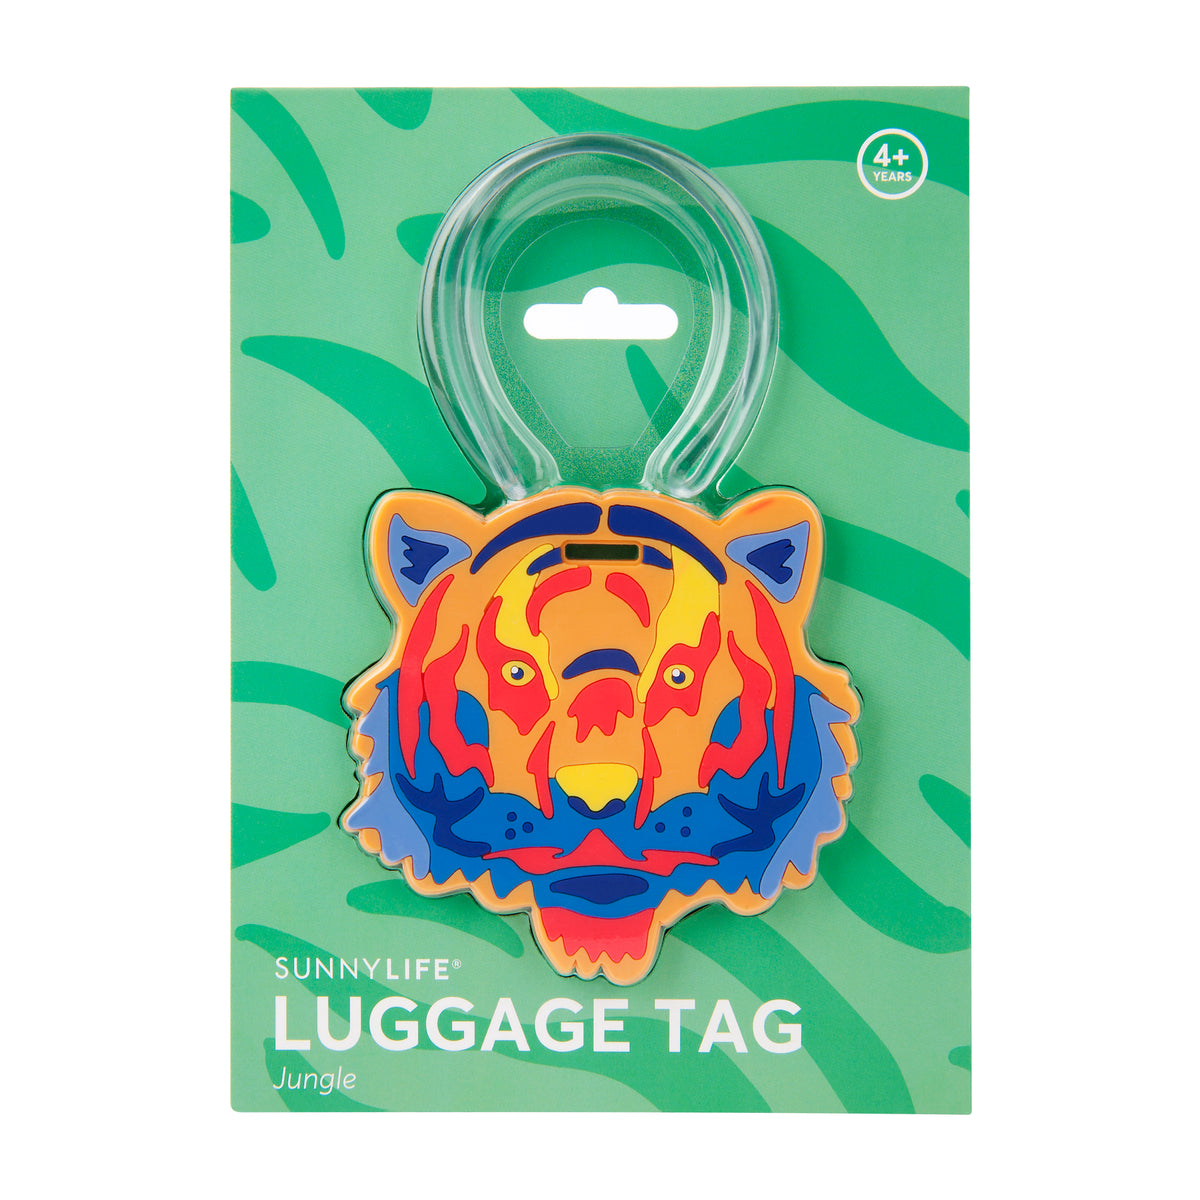 Sunnylife | Luggage Tag | Jungle